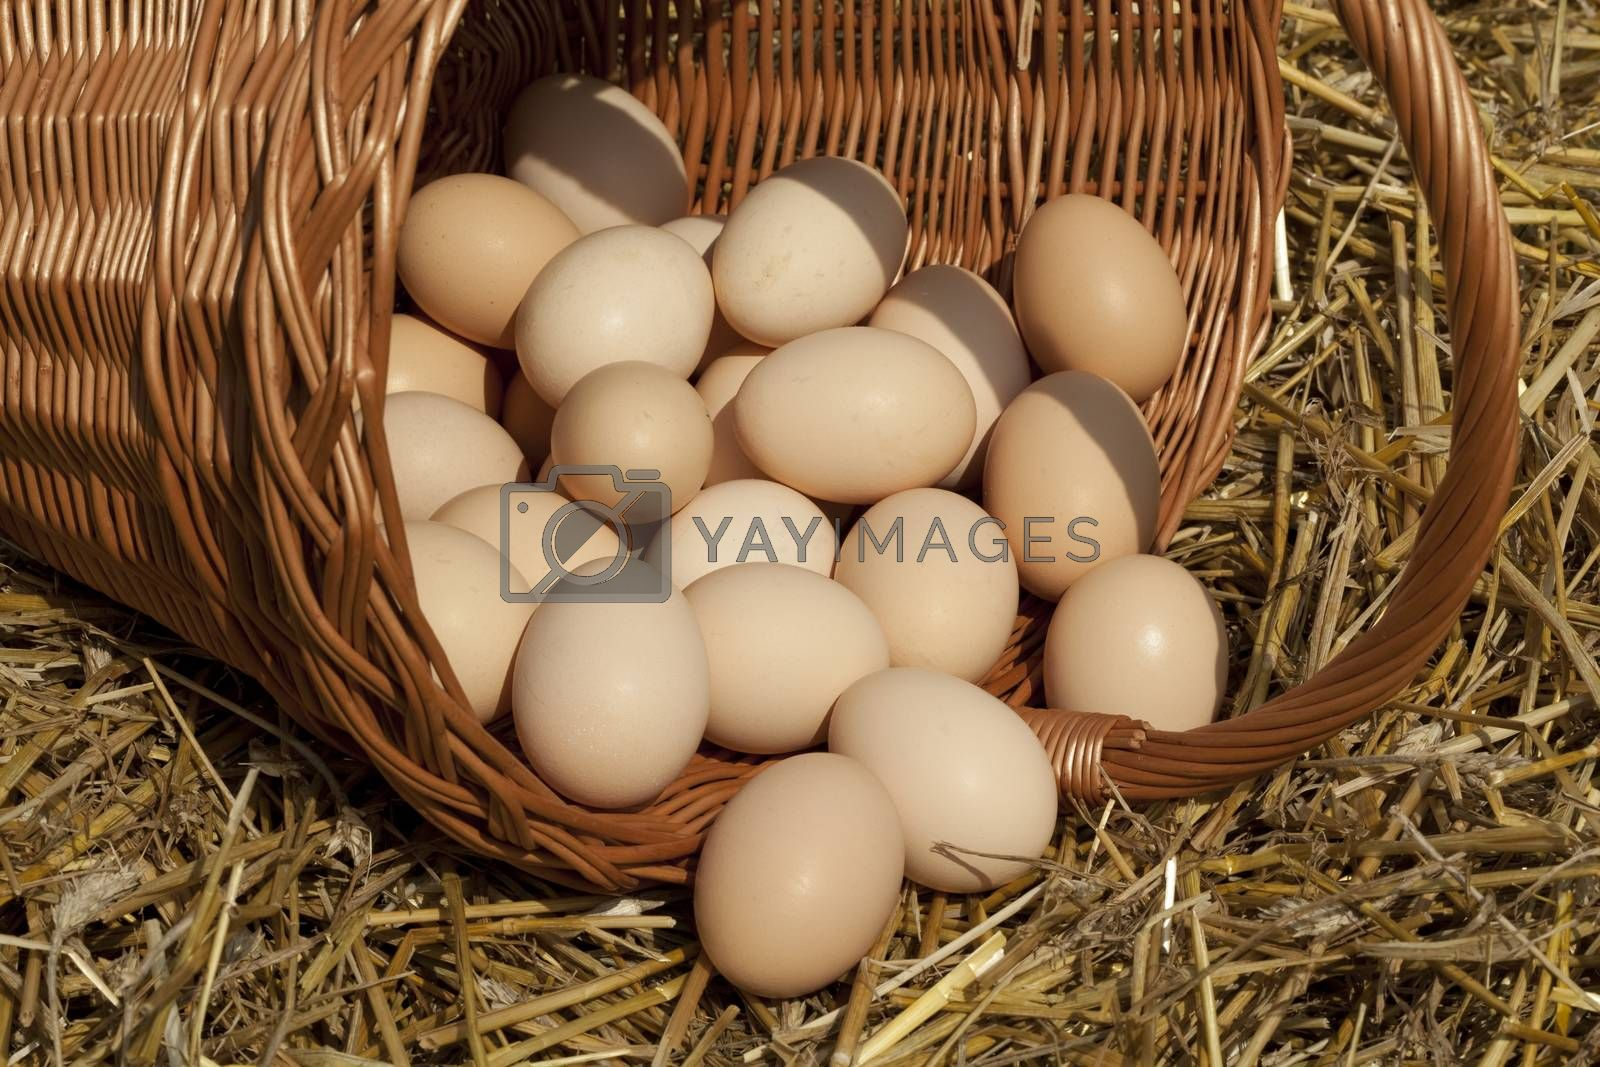 a lot of quantity of eggs country on straw in basket